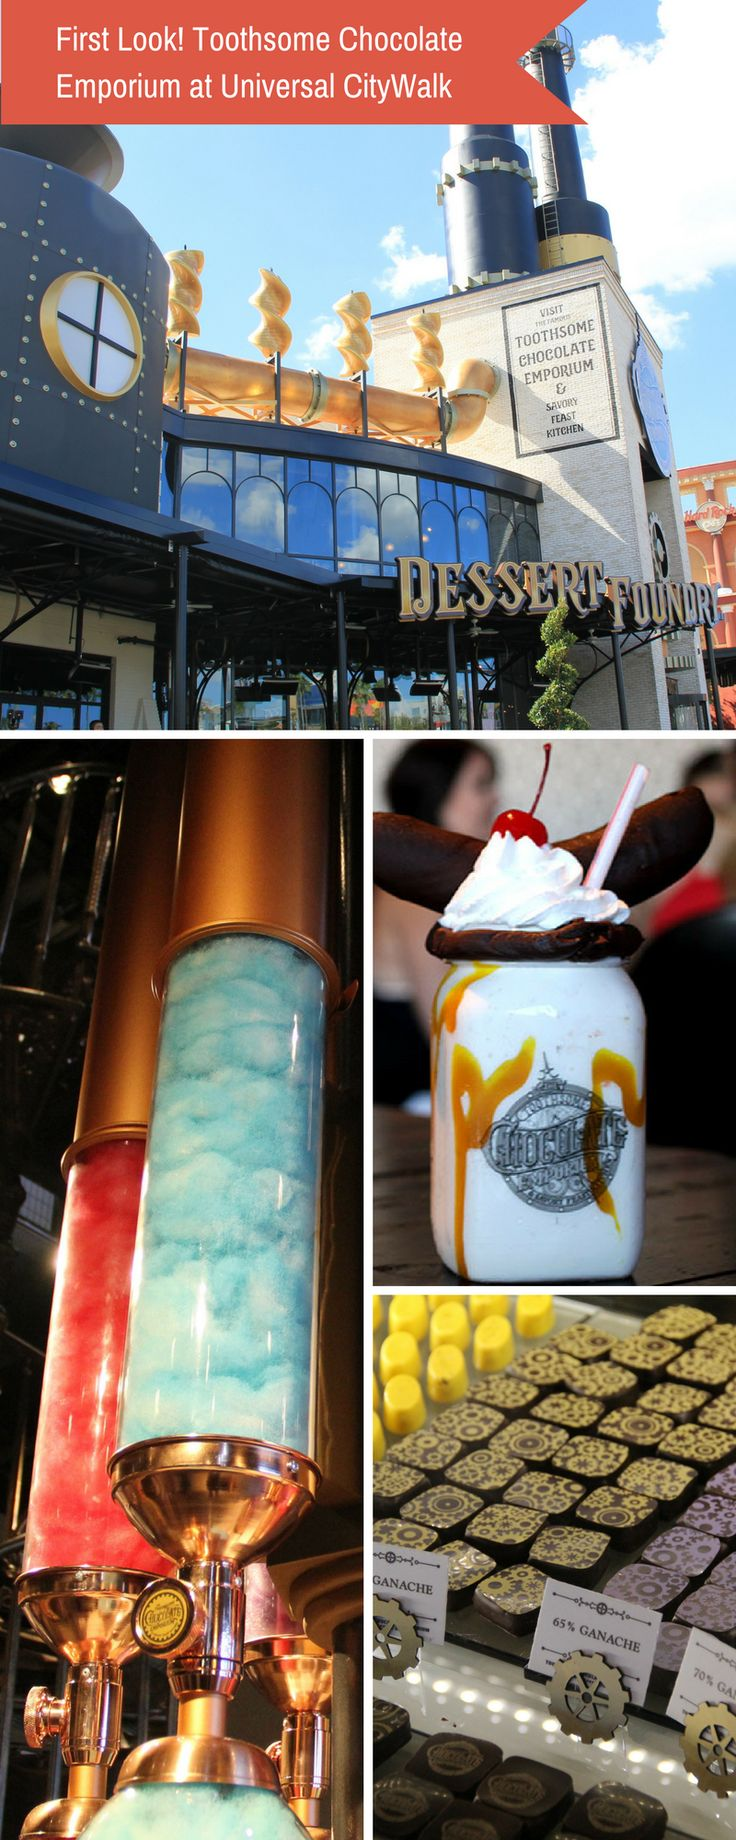 First Look: Toothsome Chocolate Emporium at Universal CityWalk!